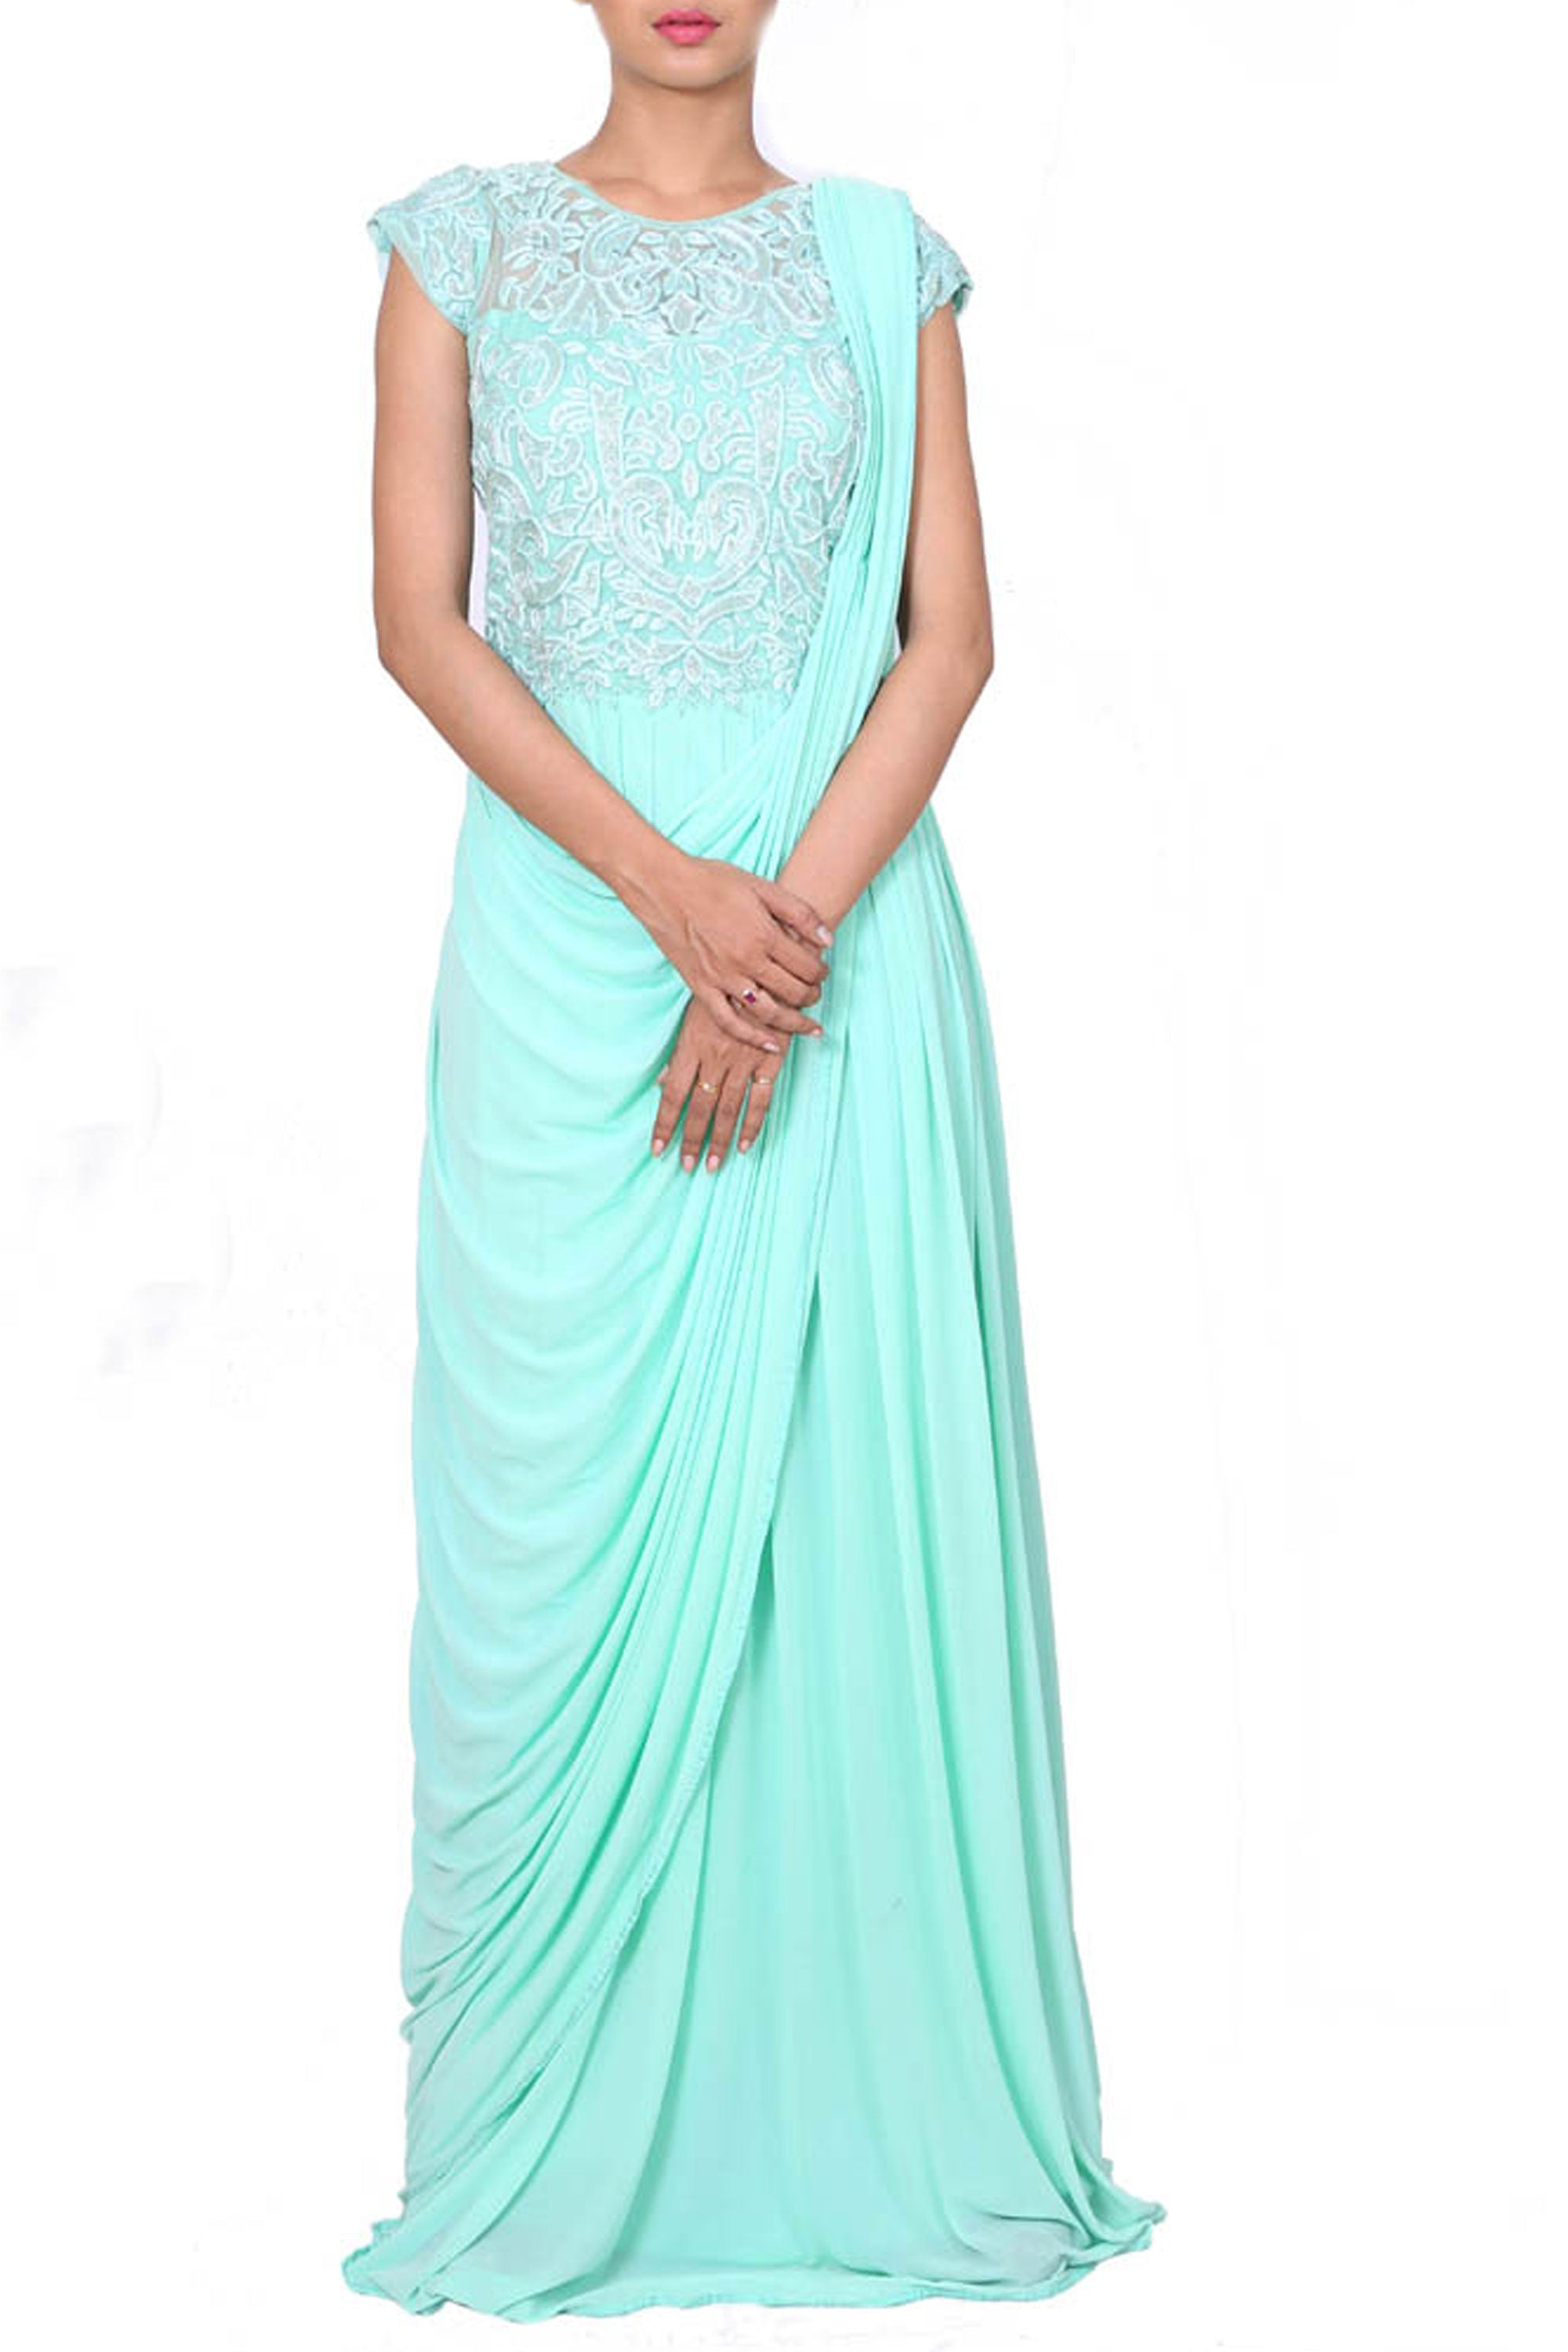 Aqua Drape Dress With Embroidered Waist Length Yoke Front